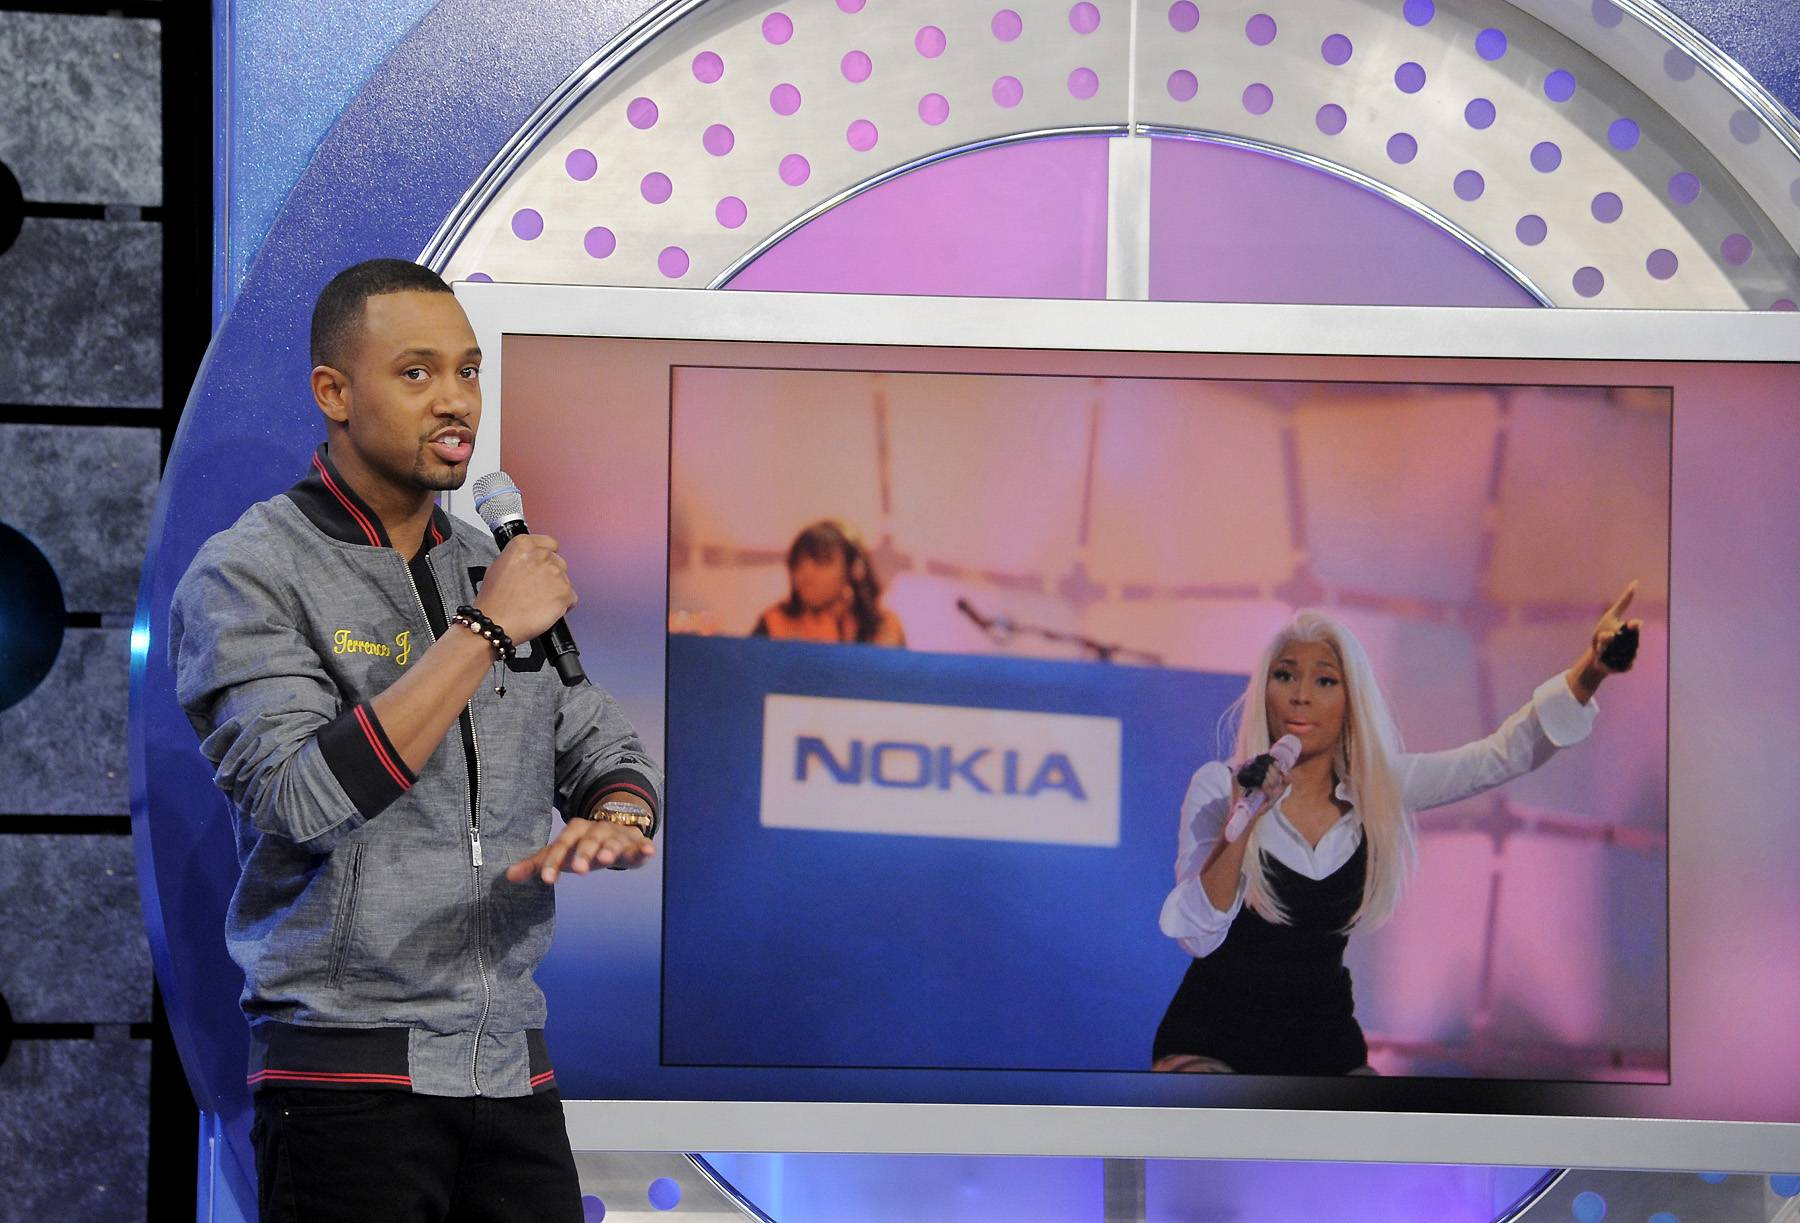 Call Me - Terrence J tells the audience about the recent surprise concert staged by Nicki Minaj at Times Square at 106 & Park, April 9, 2012. (photo: John Ricard / BET)